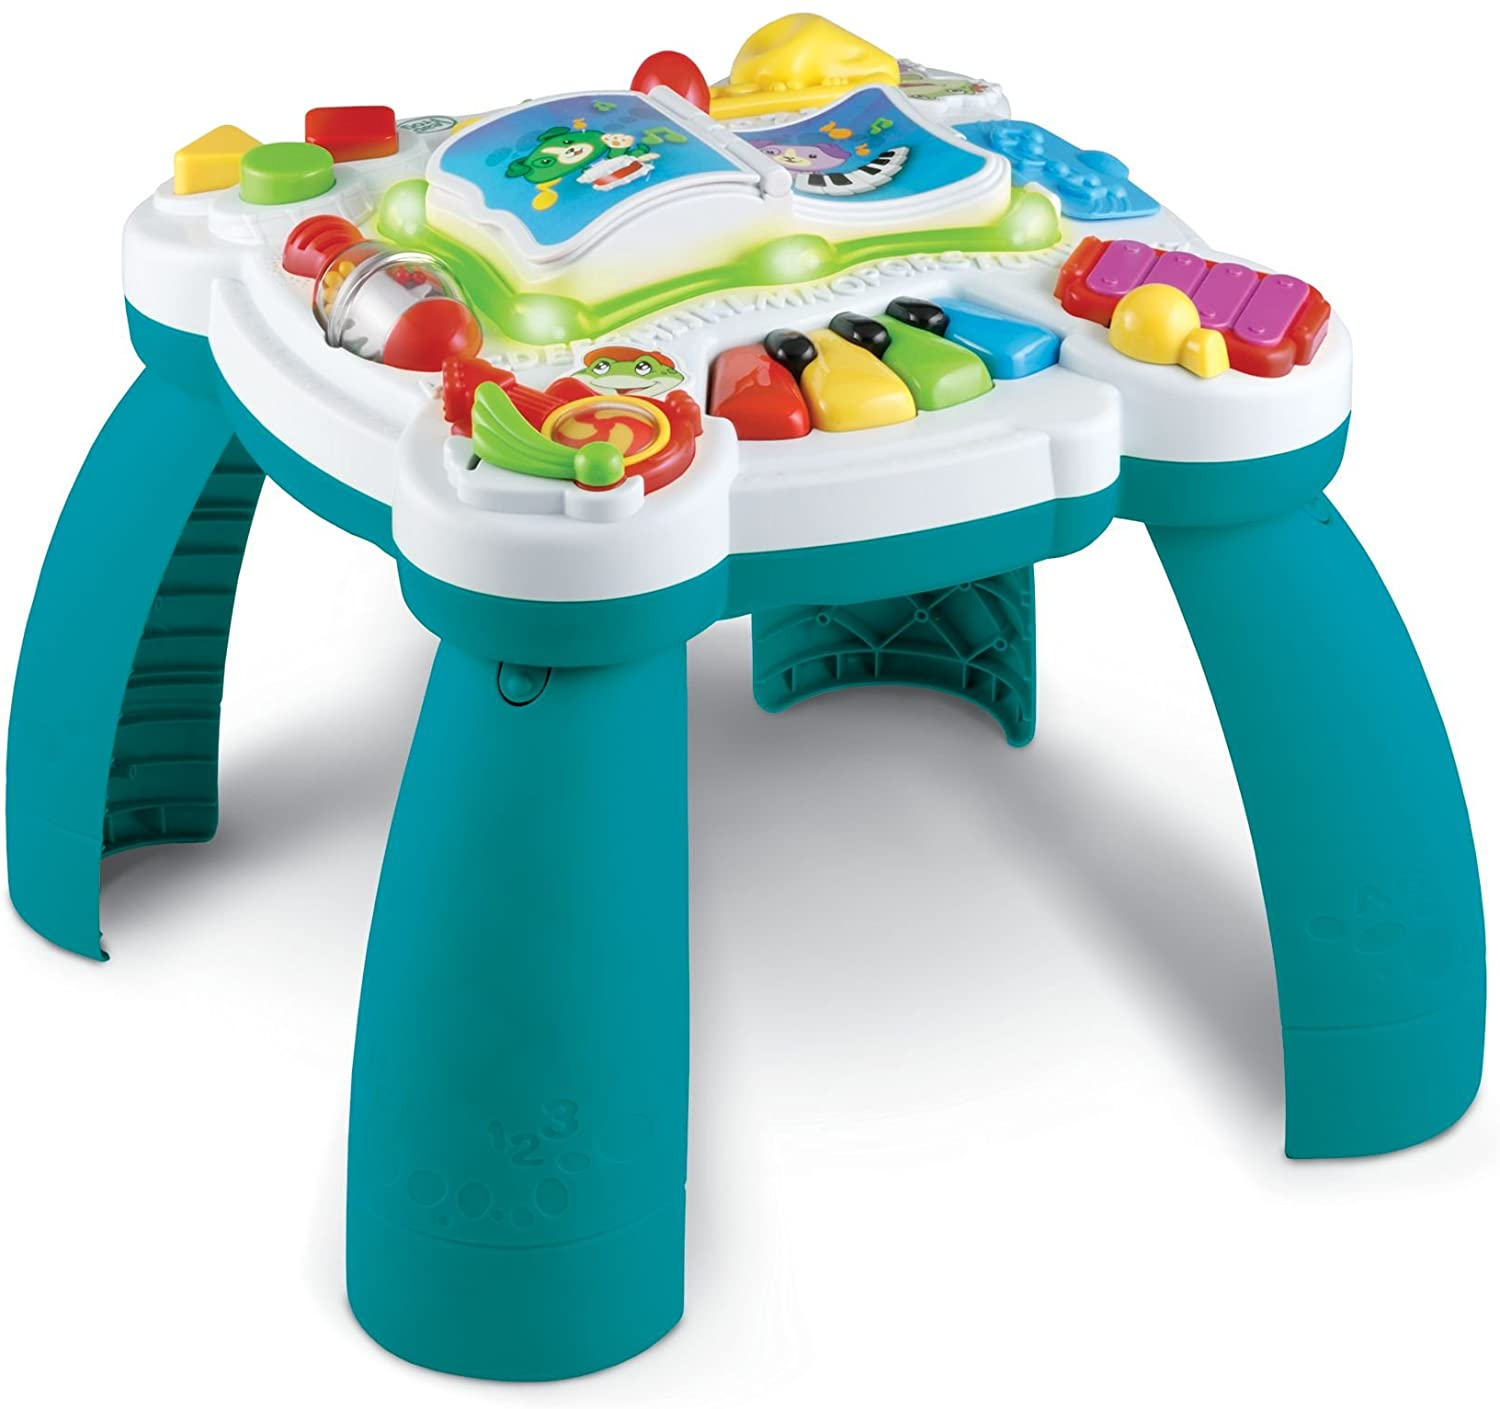 Gifts for a 9 month old: Leap Frog play table